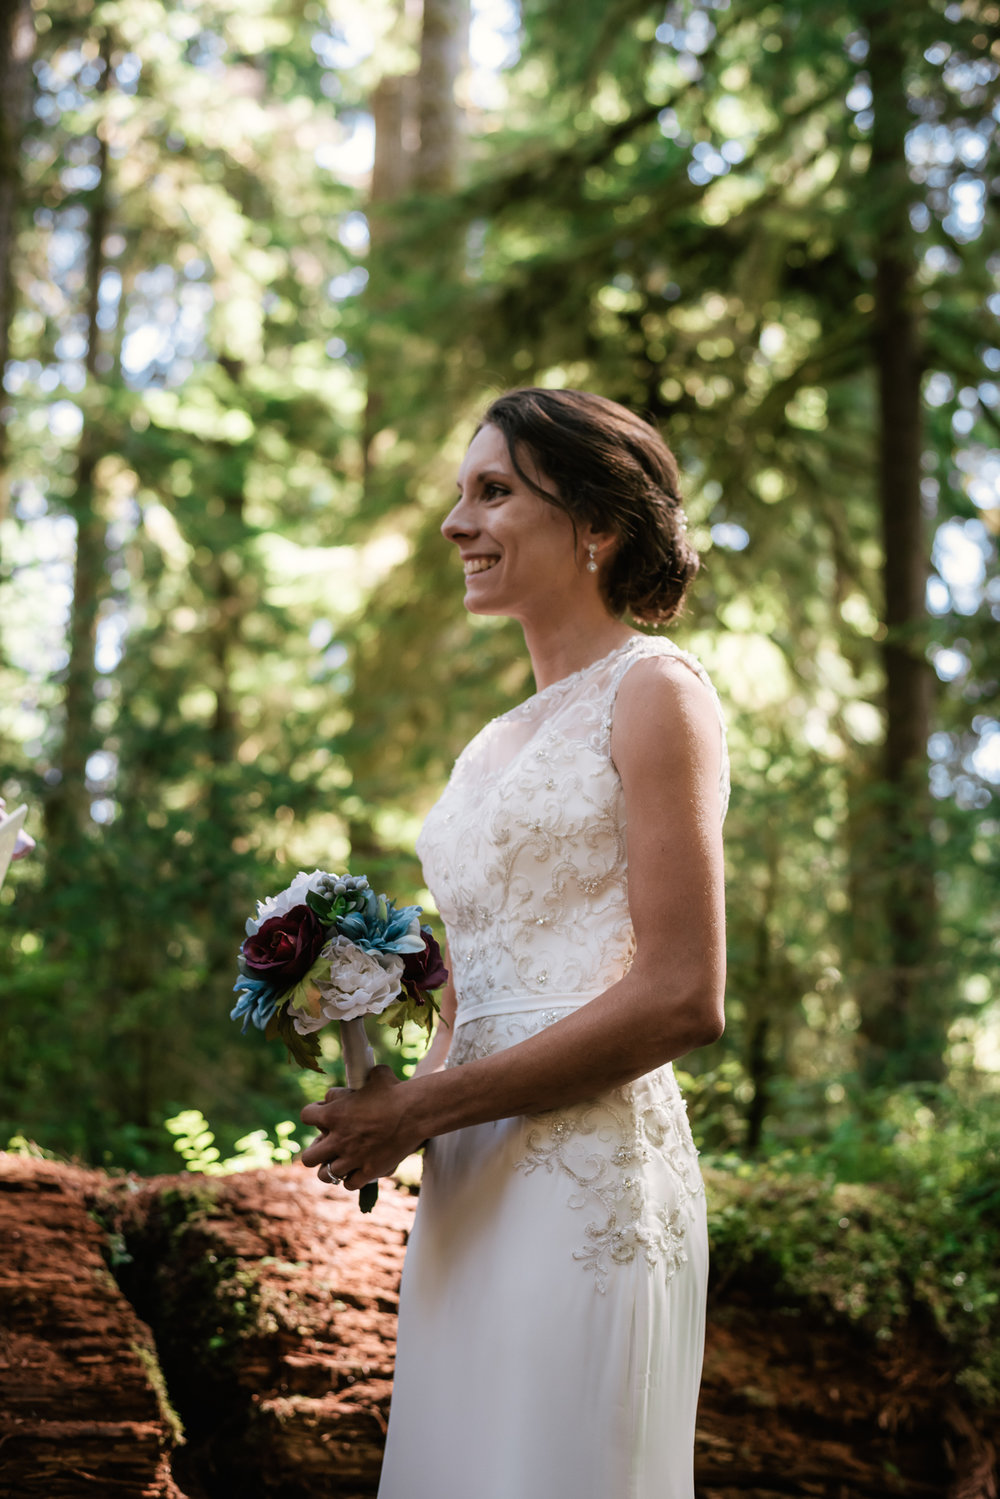 Bride smiles at her groom as he reads his wedding vows in the Hoh Rainforest.